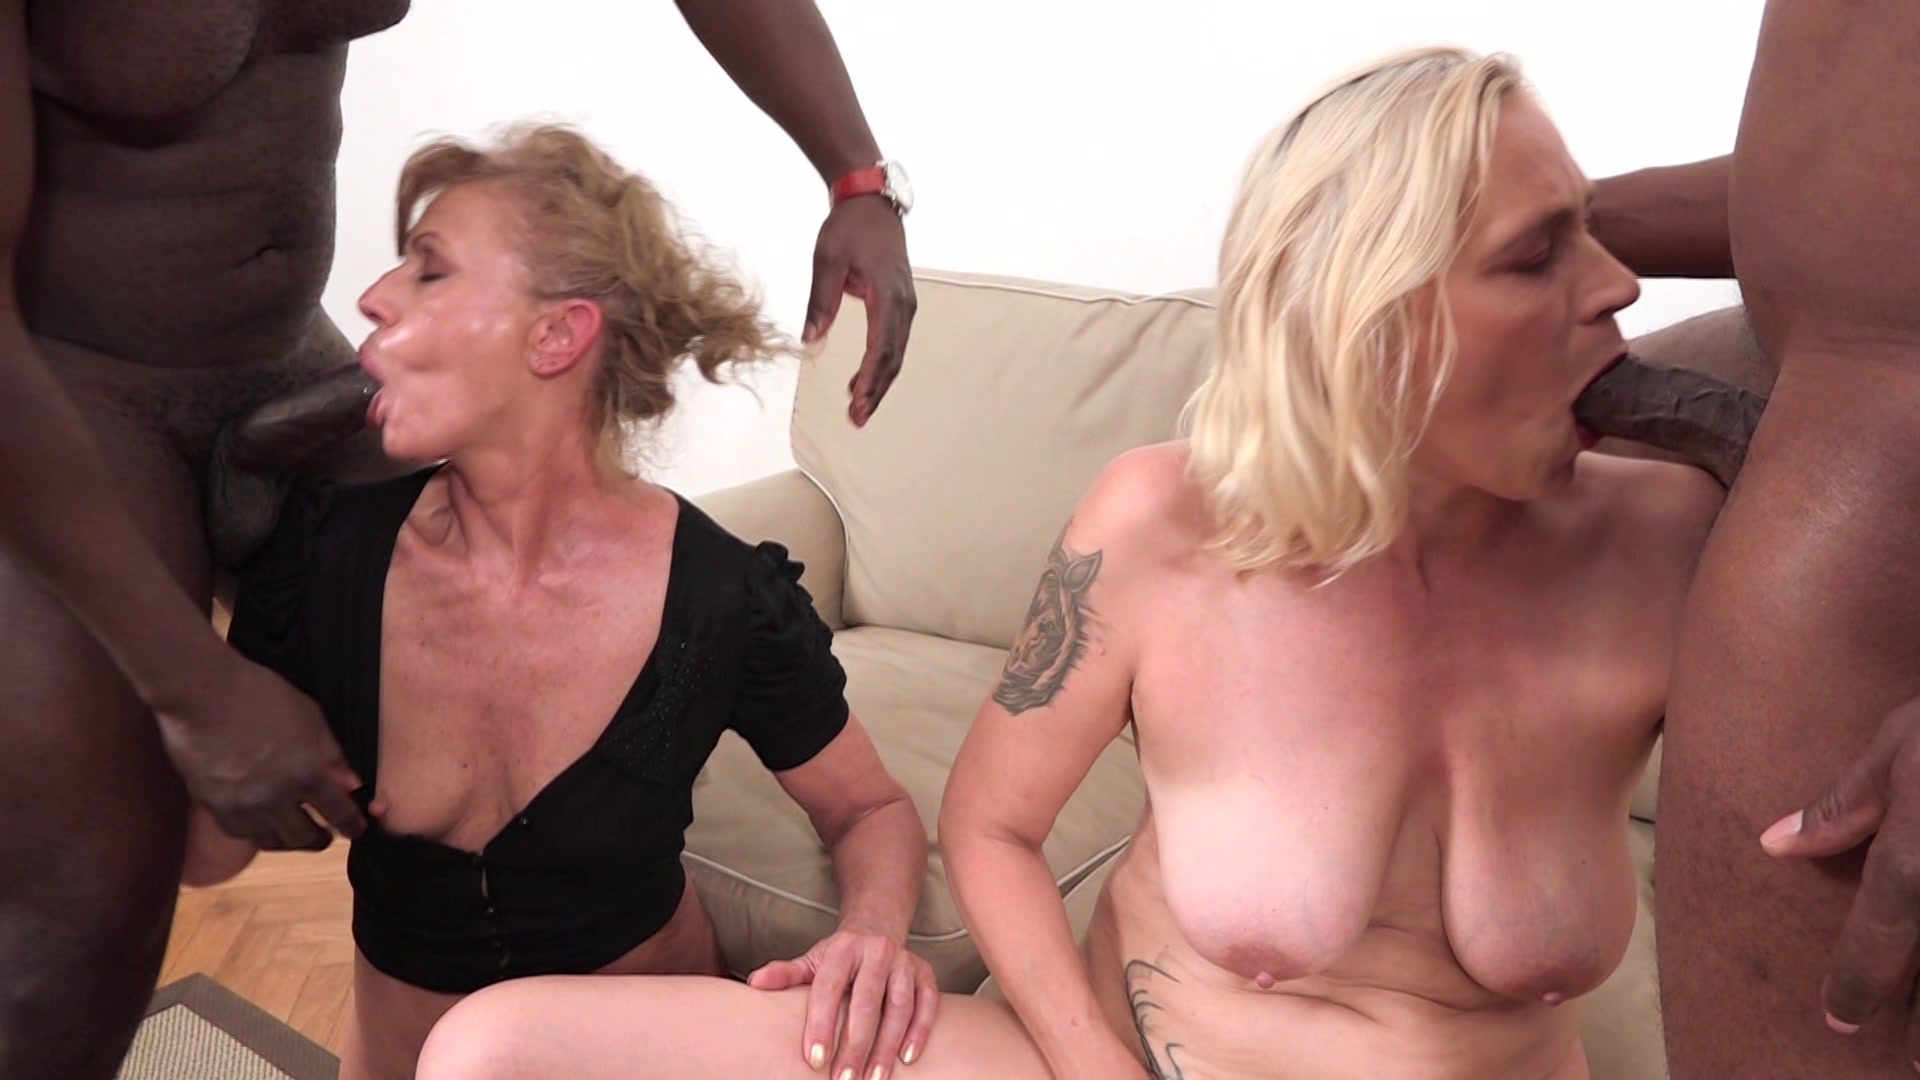 interracial granny swap streaming video on demand | adult empire